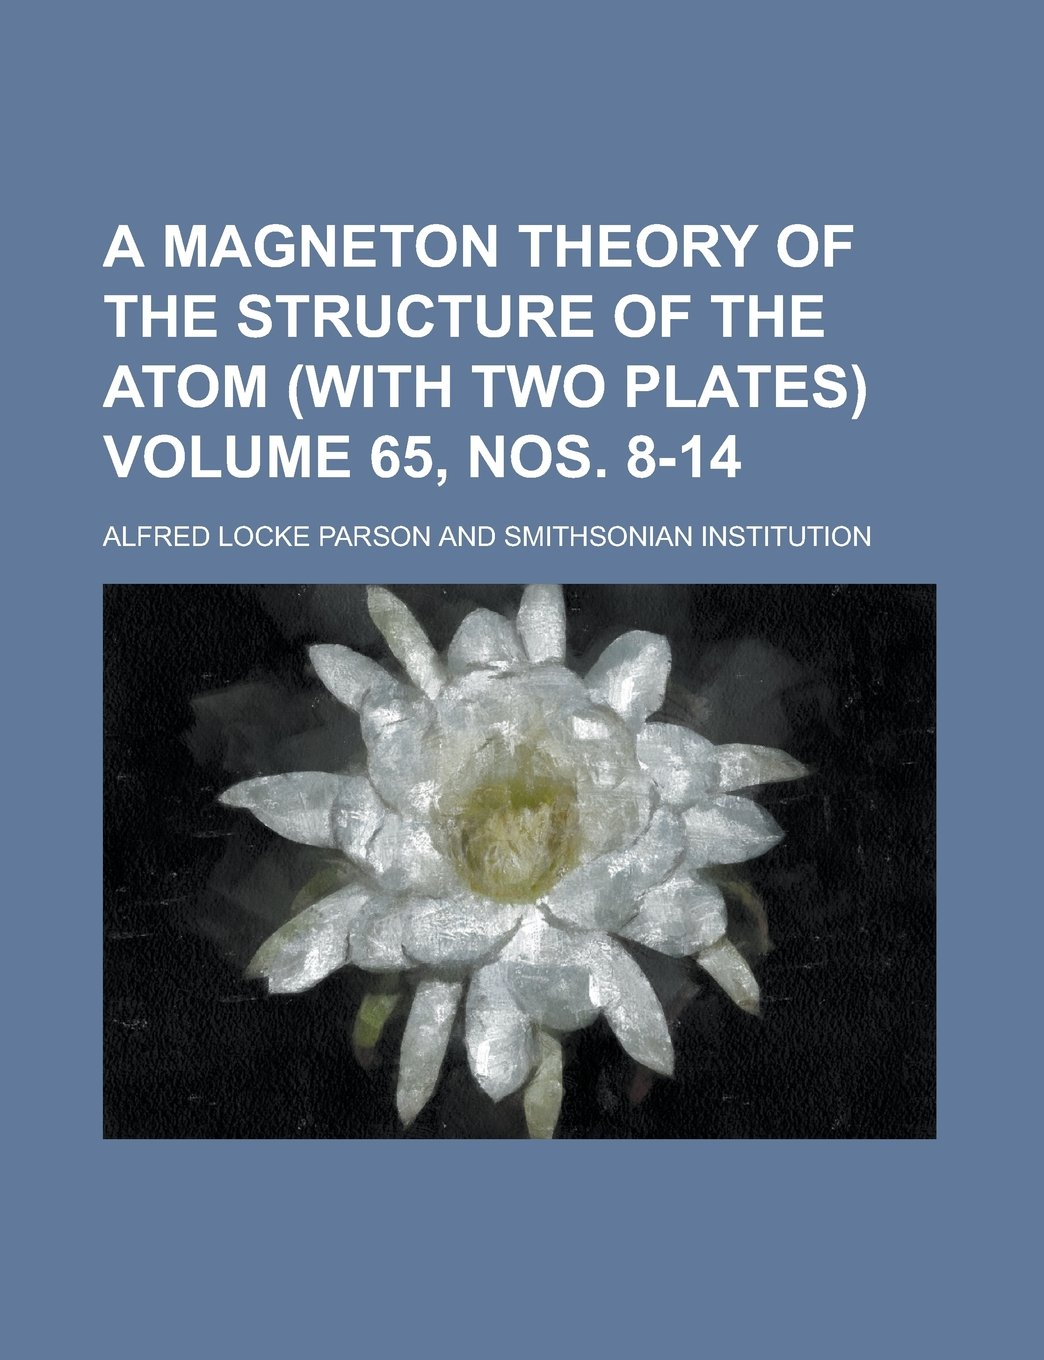 A magneton theory of the structure of the atom (with two plates) Volume 65, nos. 8-14 pdf epub